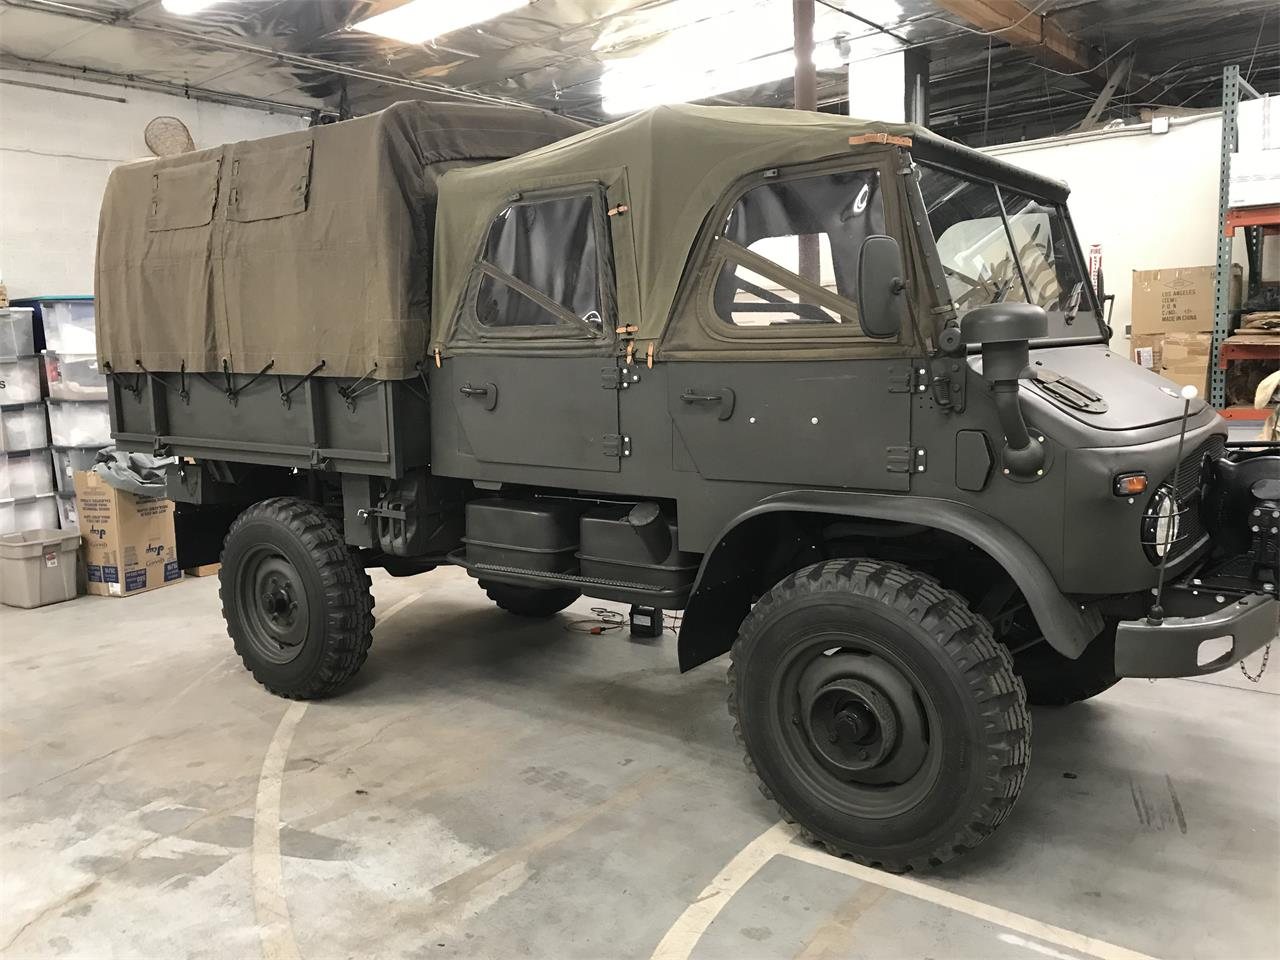 For Sale: 1963 Mercedes-Benz Unimog in Scottsdale, Arizona